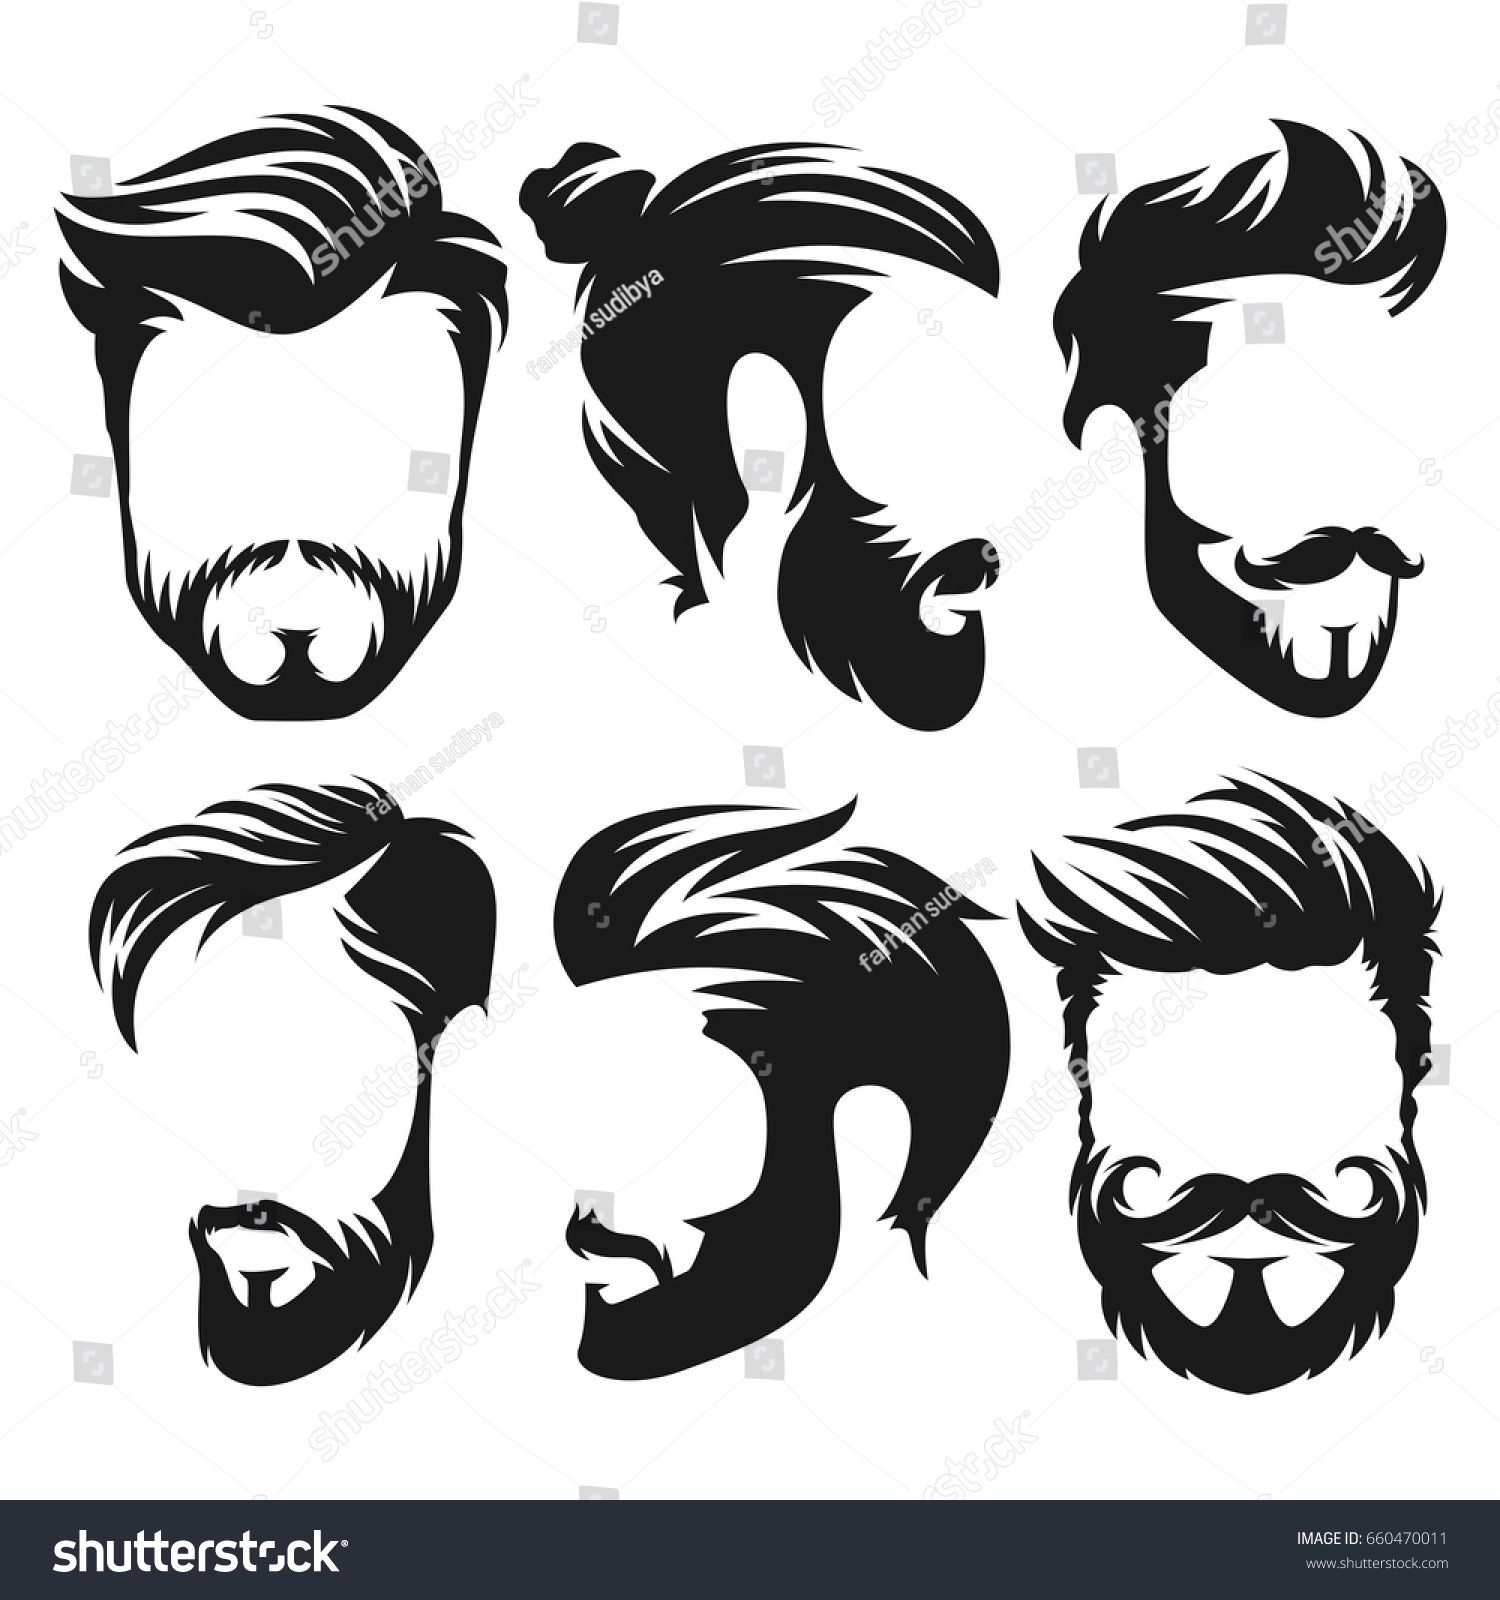 Vector Vintage Hairstyle Barber Shop Logo For Your Design Sponsored Affiliate Hairstyle Vintage Vector Barber In 2020 Hair Logo Barber Shop Barber Logo